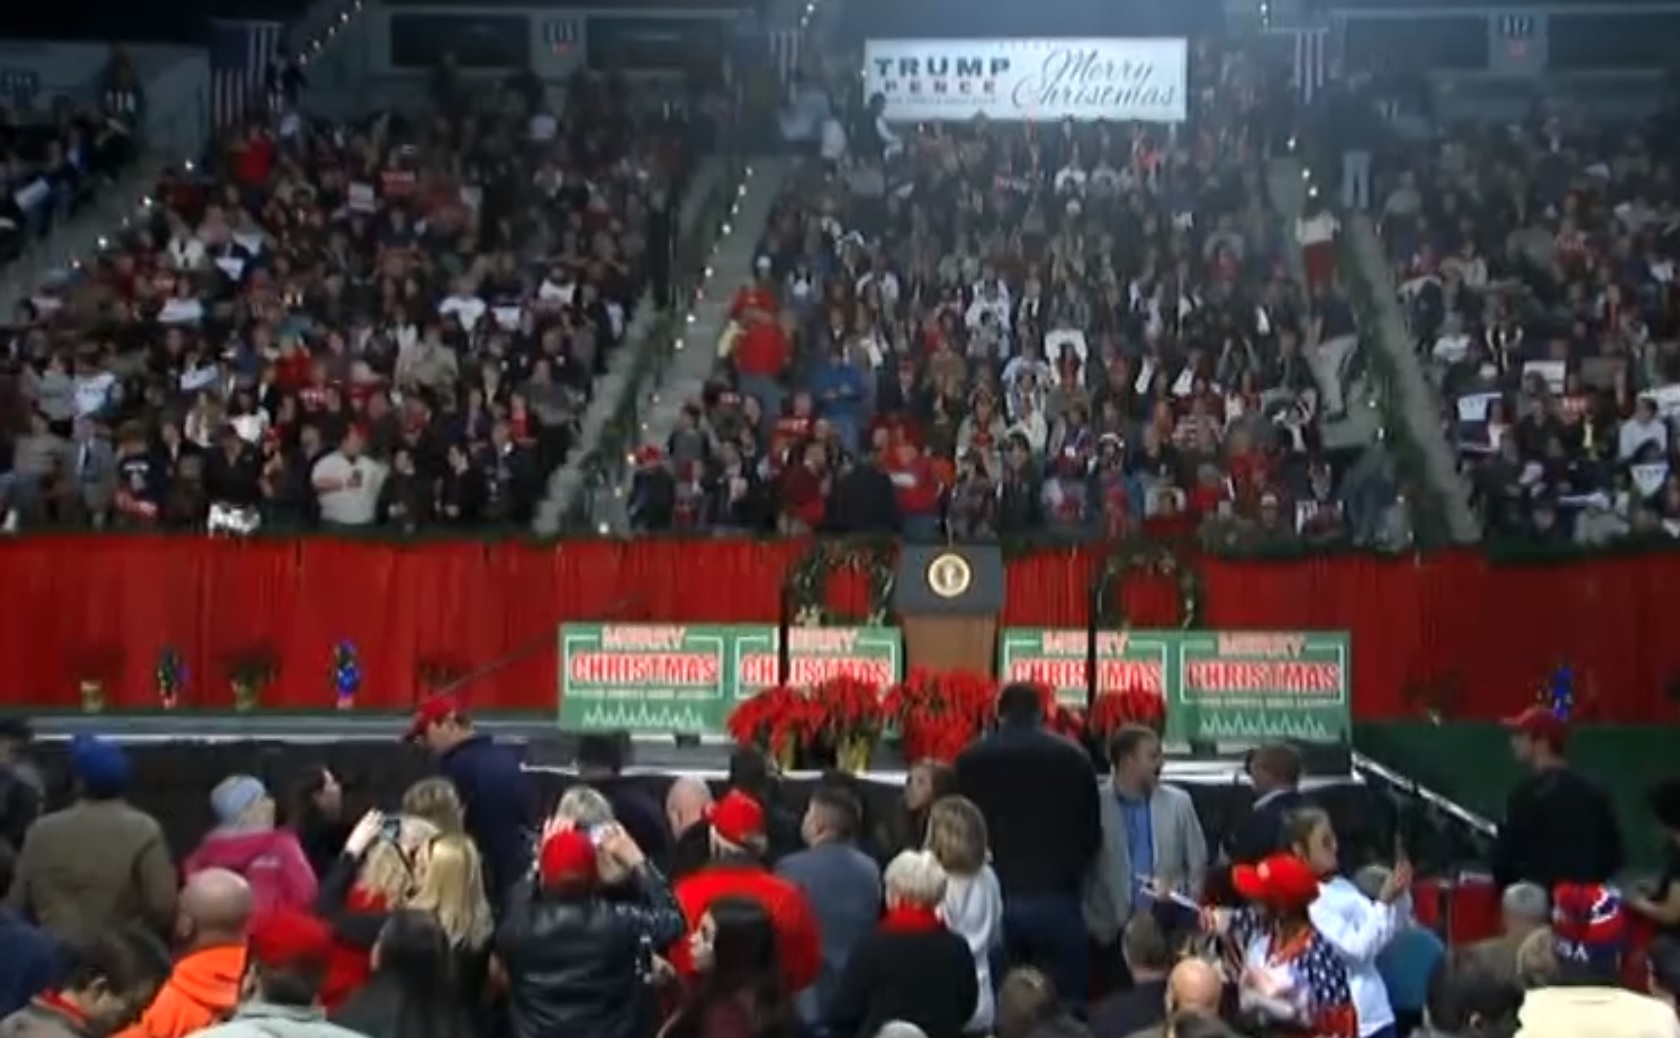 FILE: Image shows a campaign rally attended by President Donald Trump in Pensacola, Florida on Friday, December 8, 2017. Trump is campaigning for Alabama Senate candidate Roy Moore. (CNN Newsource)